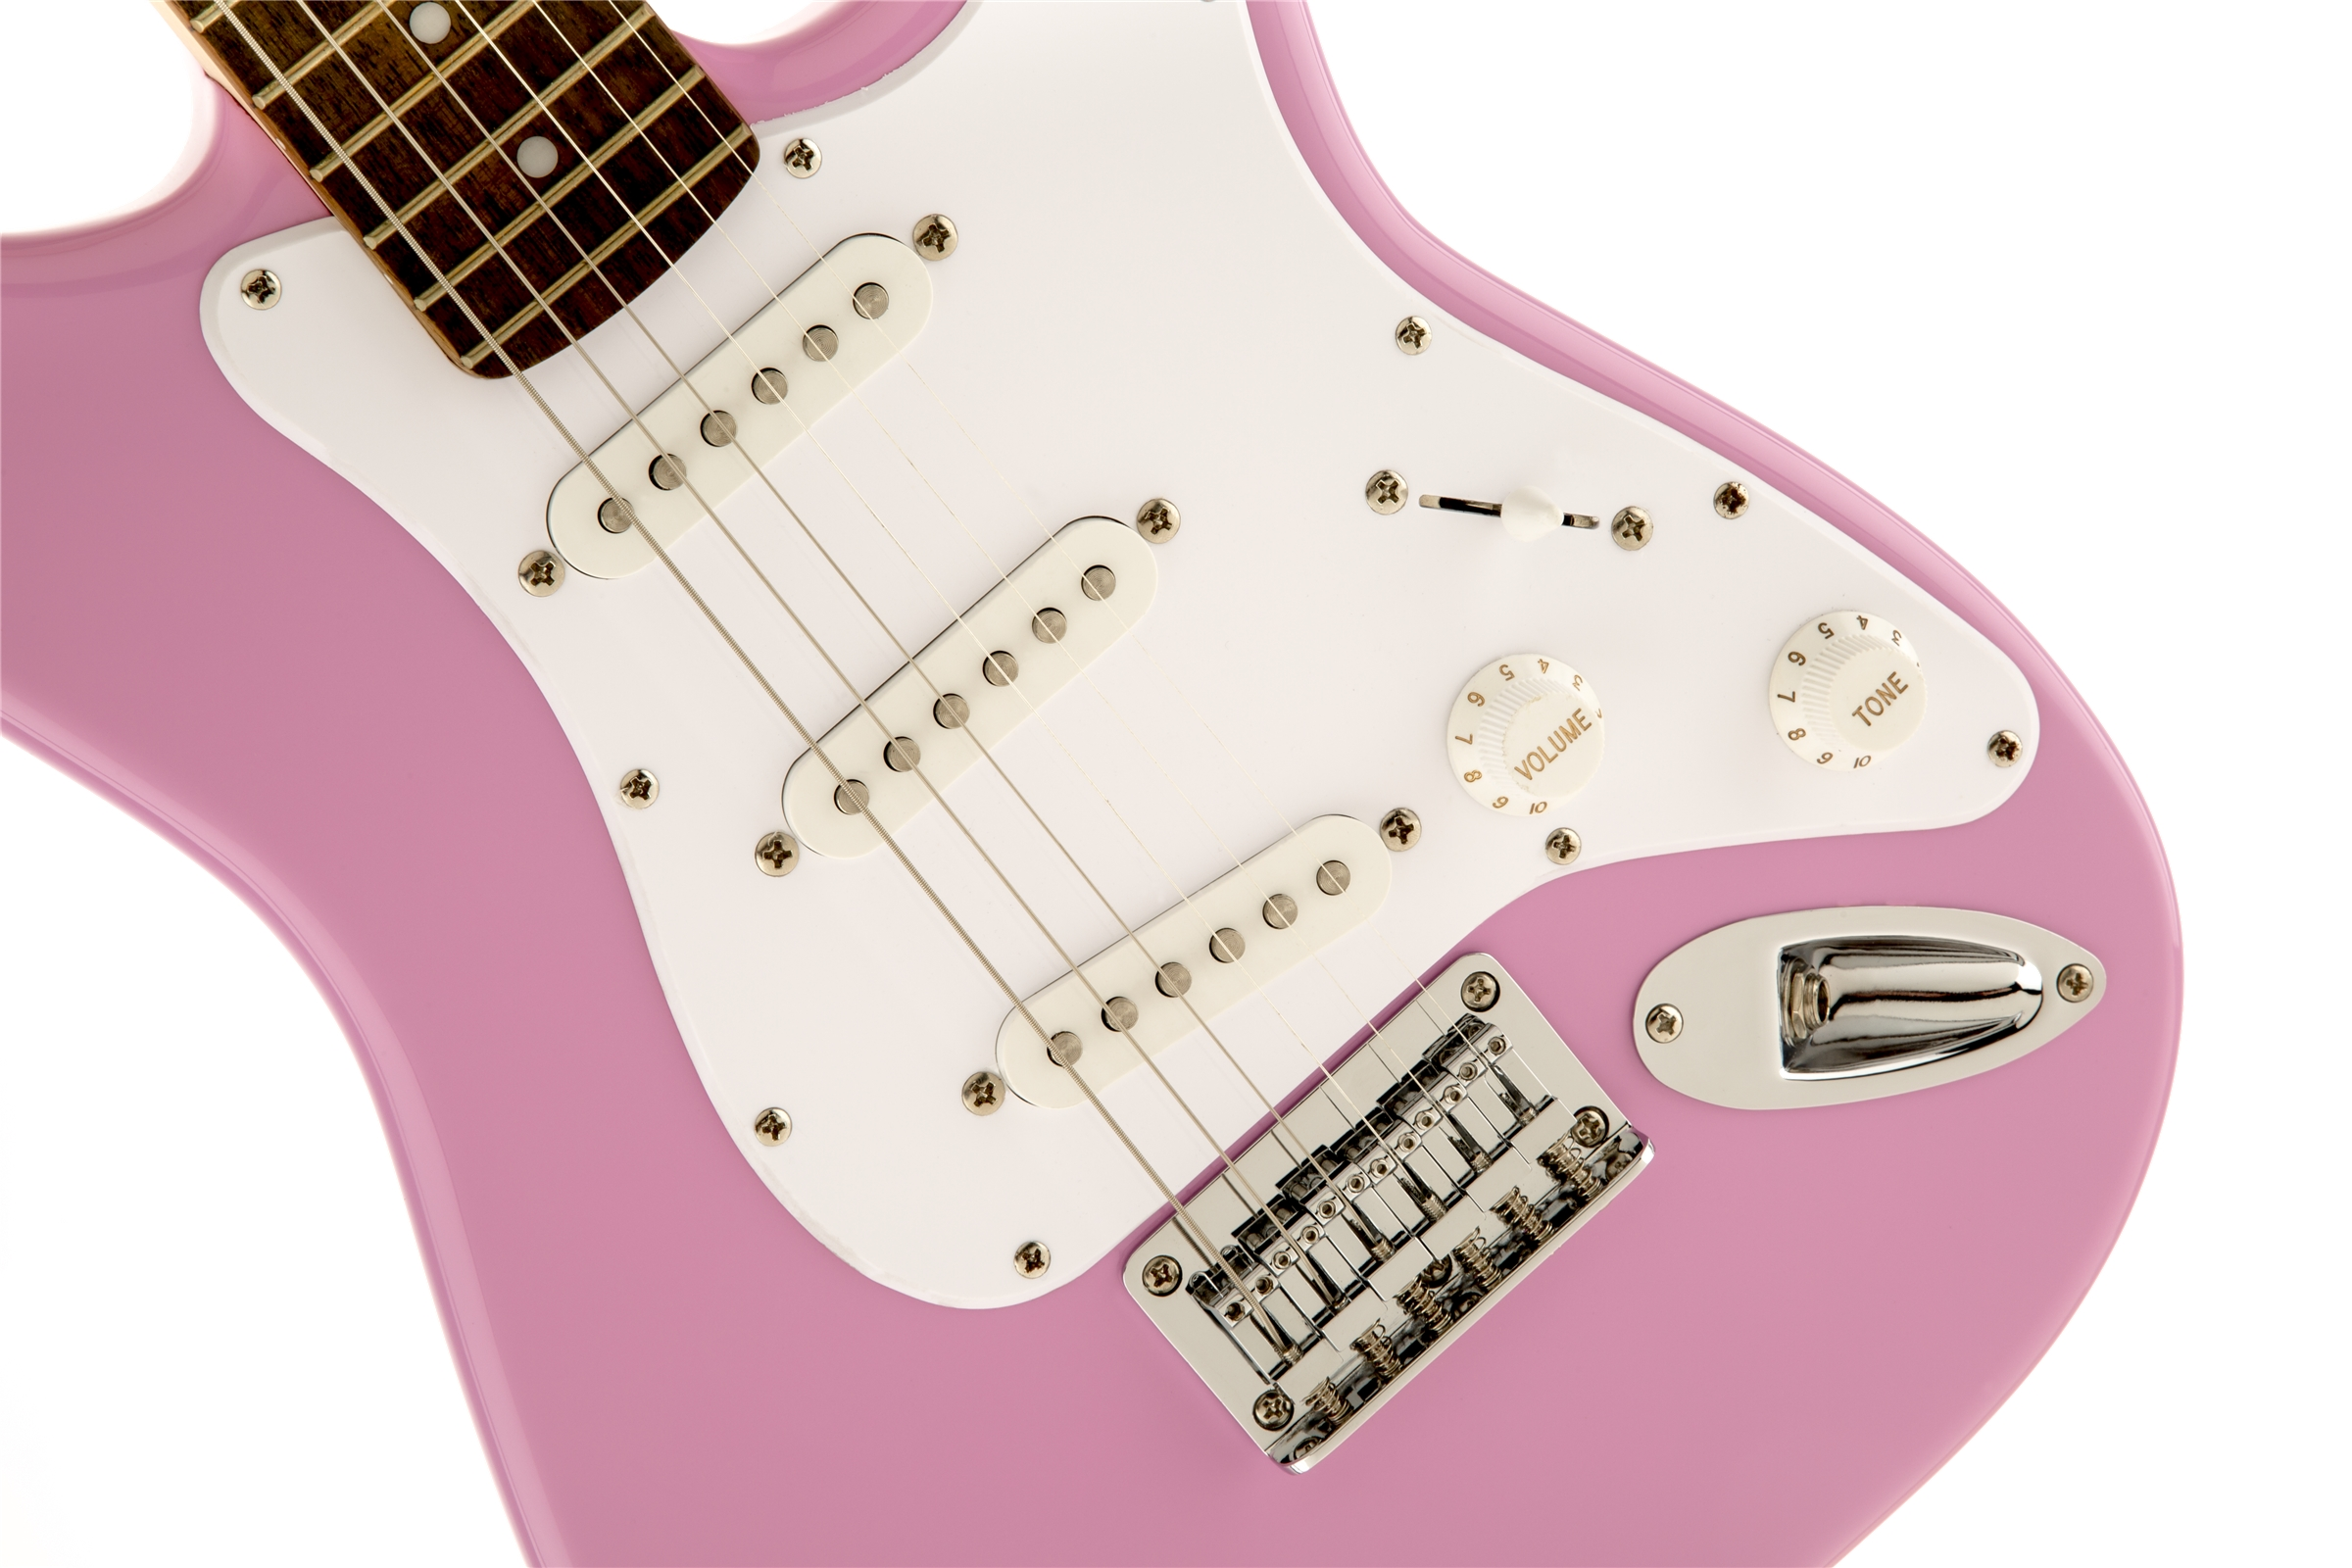 squier by fender mini strat electric guitar pink w tuner ebay. Black Bedroom Furniture Sets. Home Design Ideas